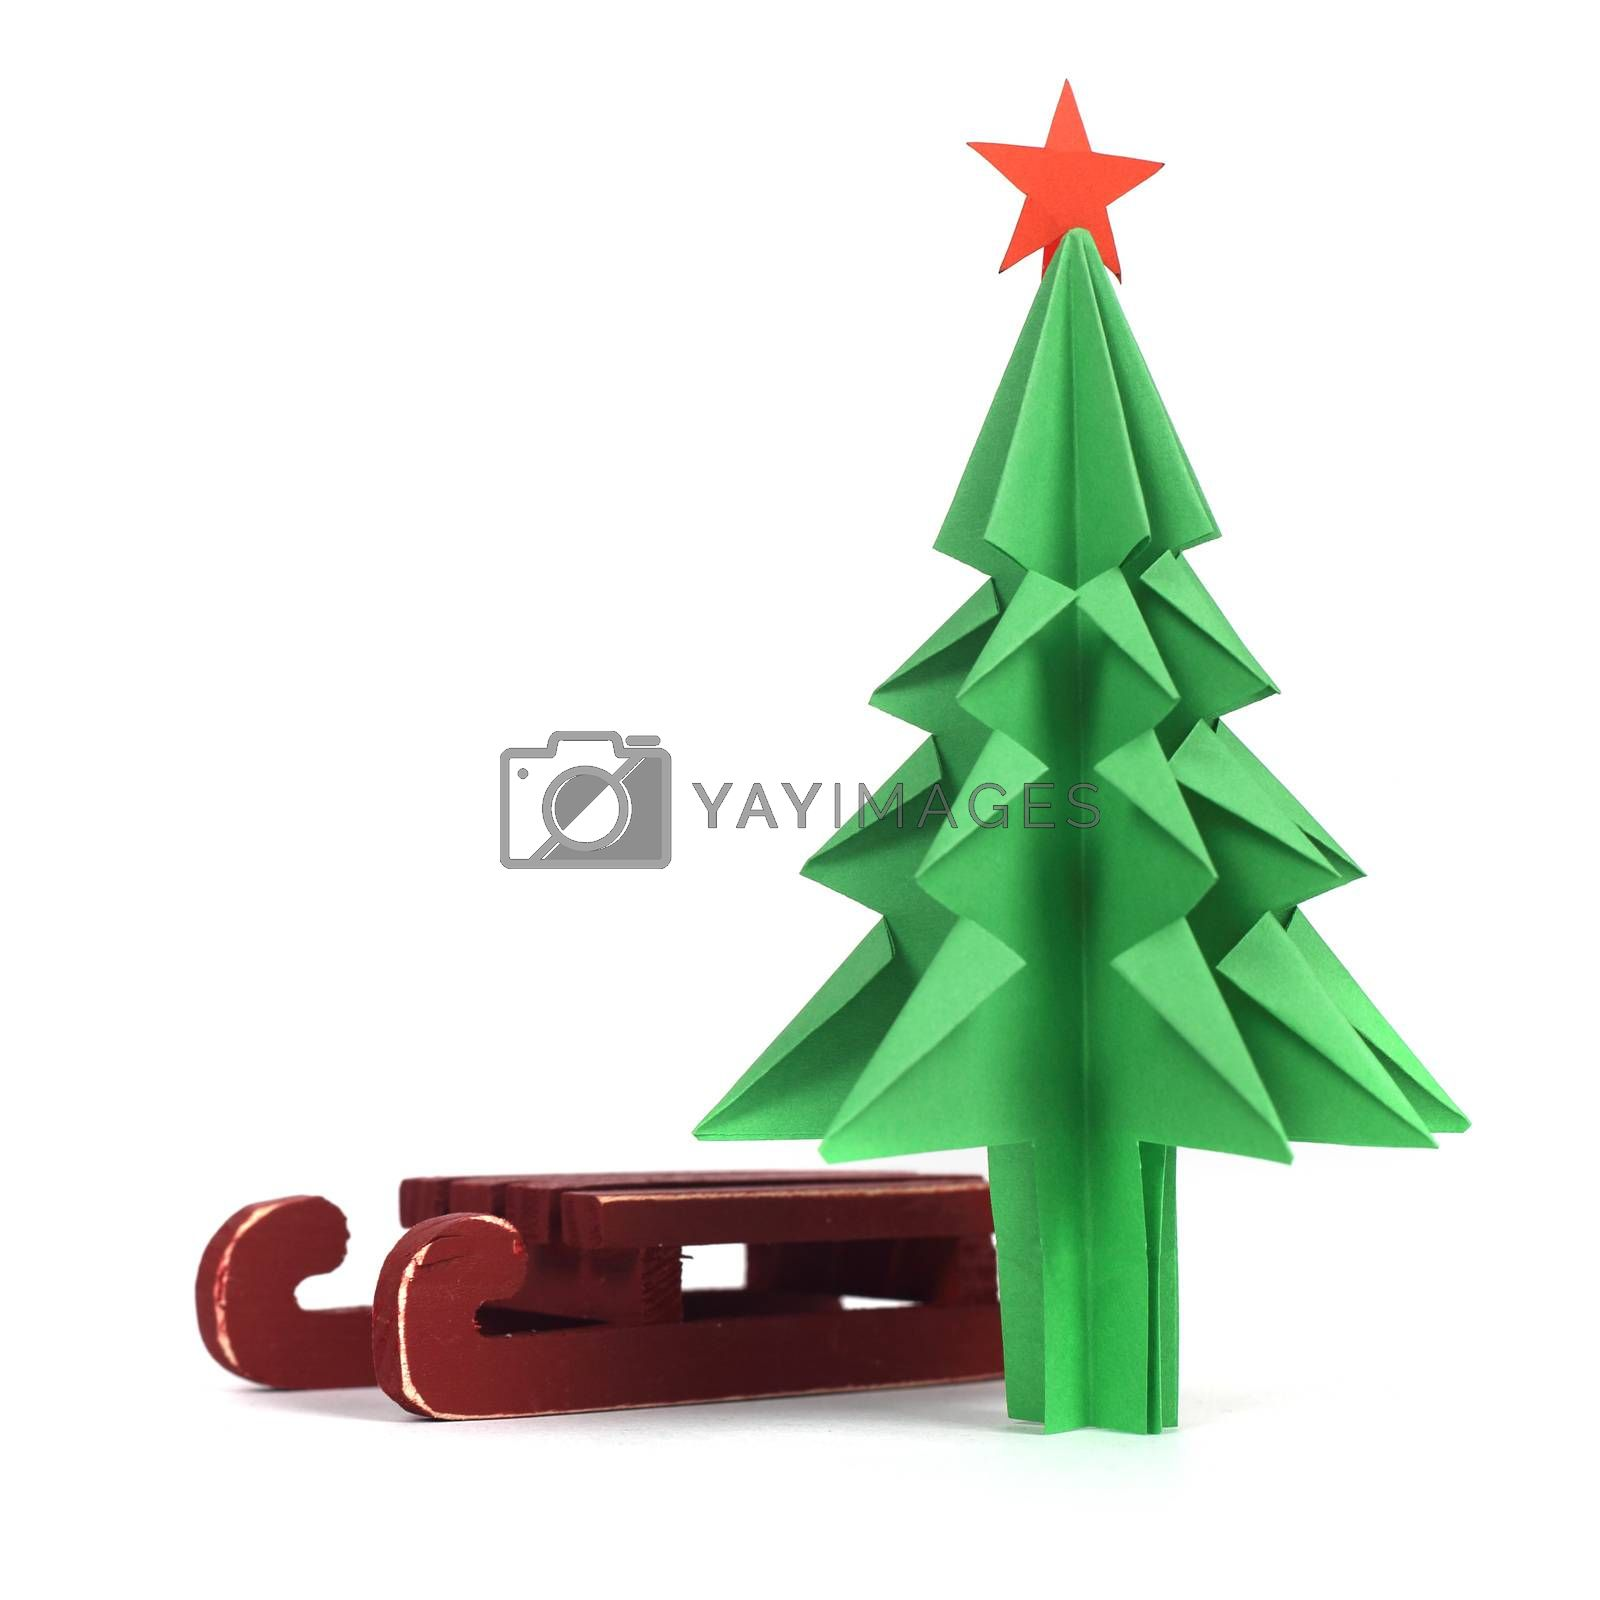 Origami Christmas tree of green craft paper isolated on white background